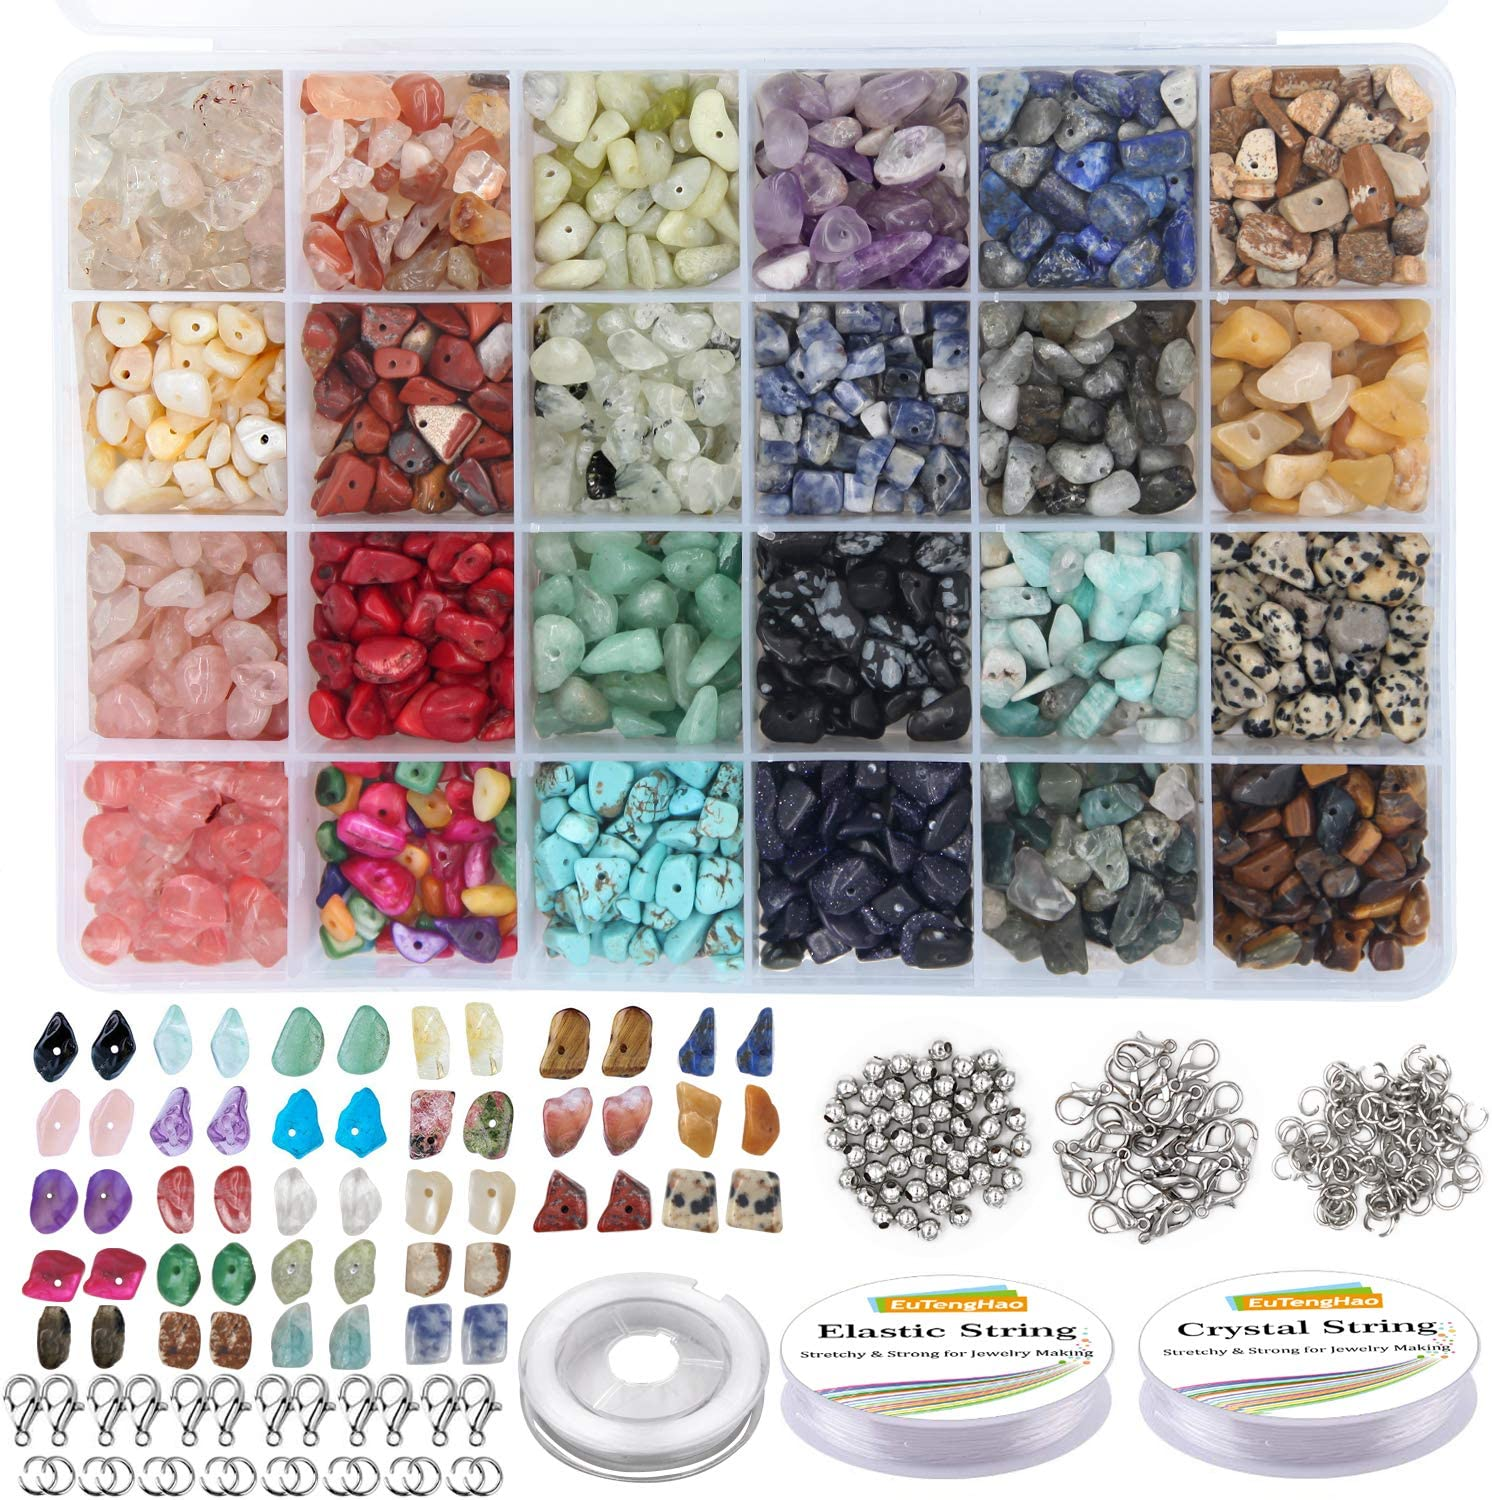 1620Pcs 18color Irregular Crystal Chip Beads GACUYI Jewelry Making Natural Gemstones Kit with Seed Bead Spacers and Jewelry Making Findings and Tools for Earring Necklace and Bracelets Making Supply